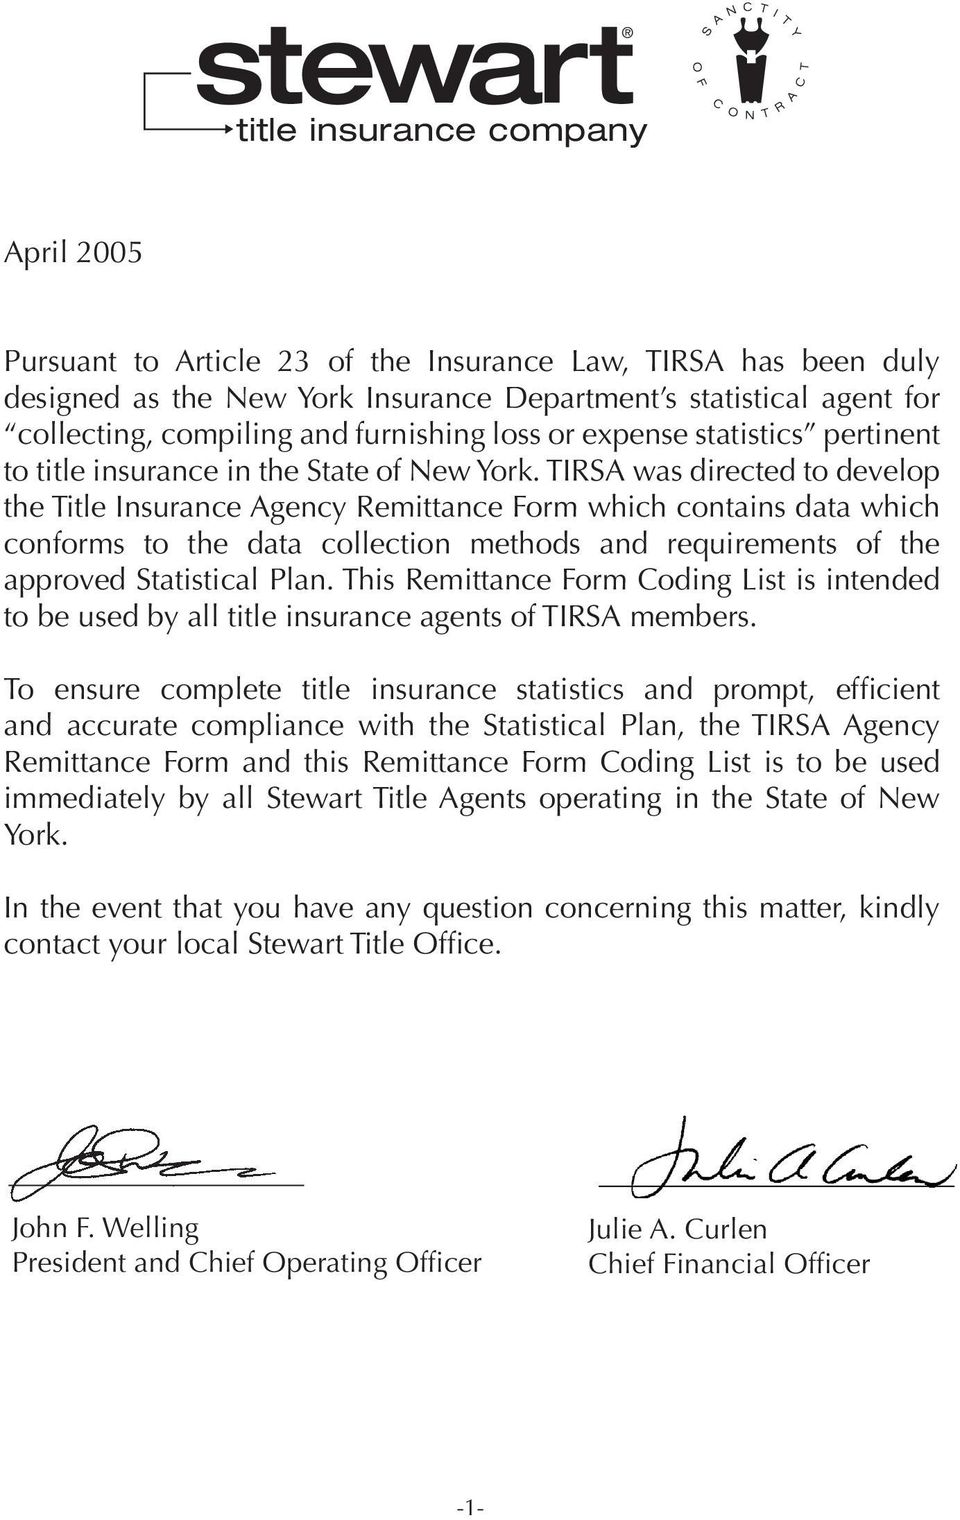 TIRSA was directed to develop the Title Insurance Agency Remittance Form which contains data which conforms to the data collection methods and requirements of the approved Statistical Plan.